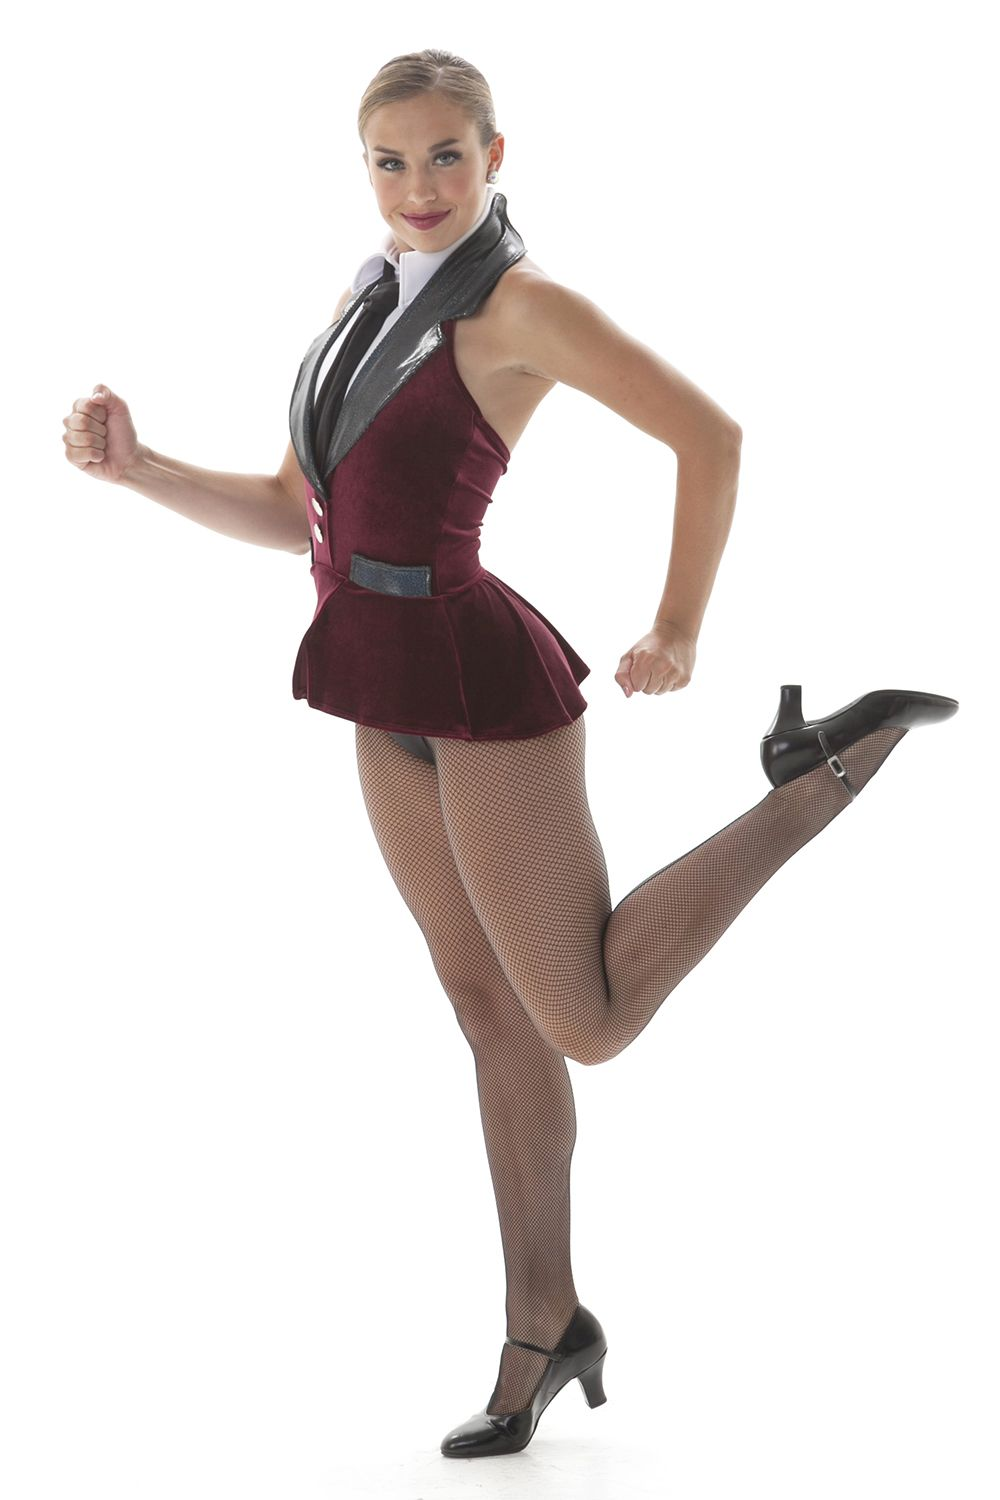 cfd78e4d8 Career girl dance costume. Perfect for a working girl theme, tap or jazz  dance! Peplum halter leotard has a suit and tie look.